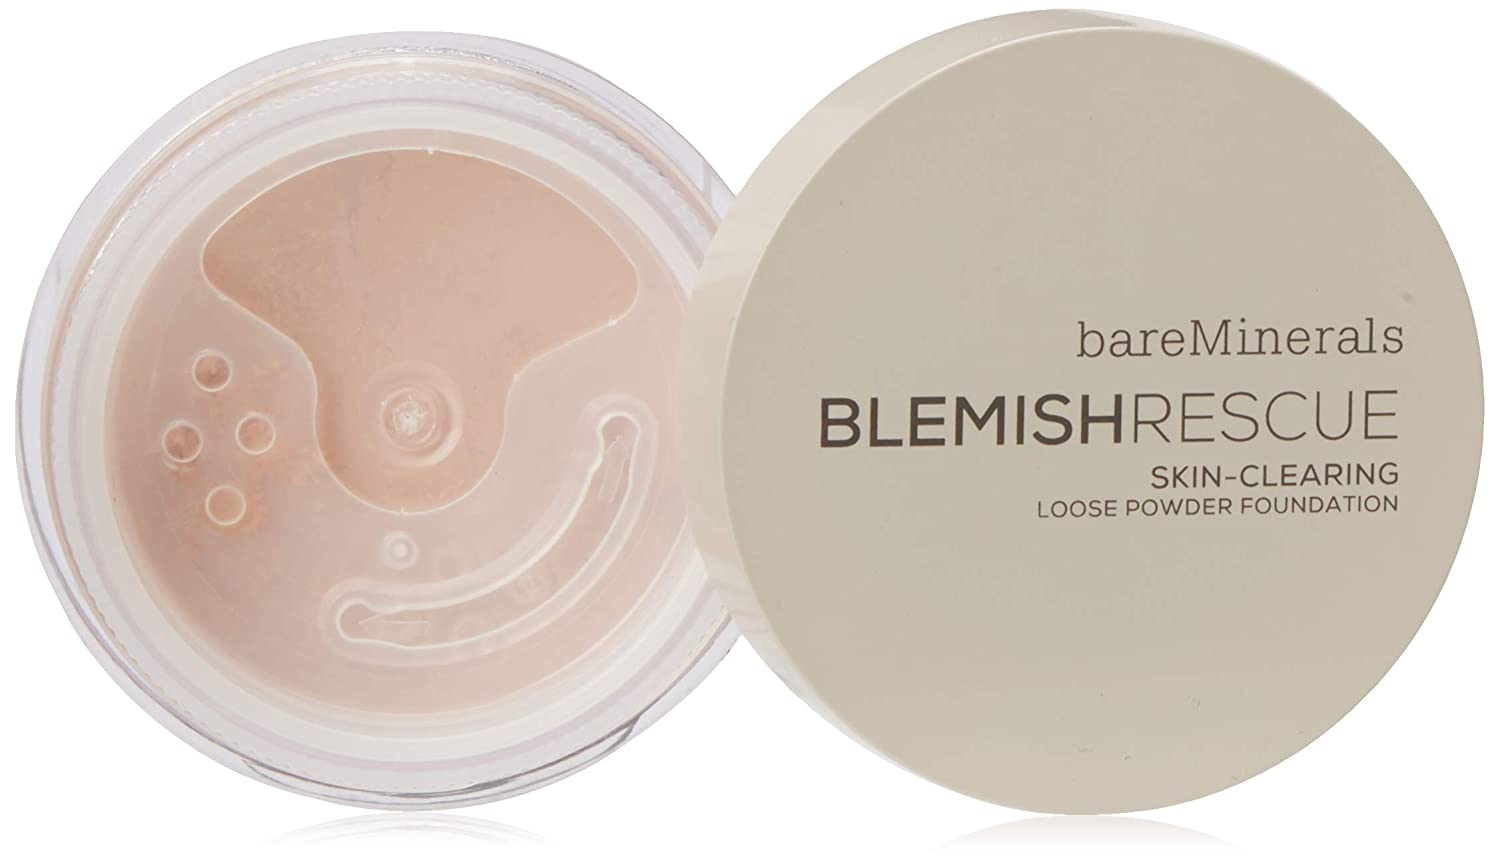 BareMinerals Blemish Rescue Skin-Clearing Loose Powder